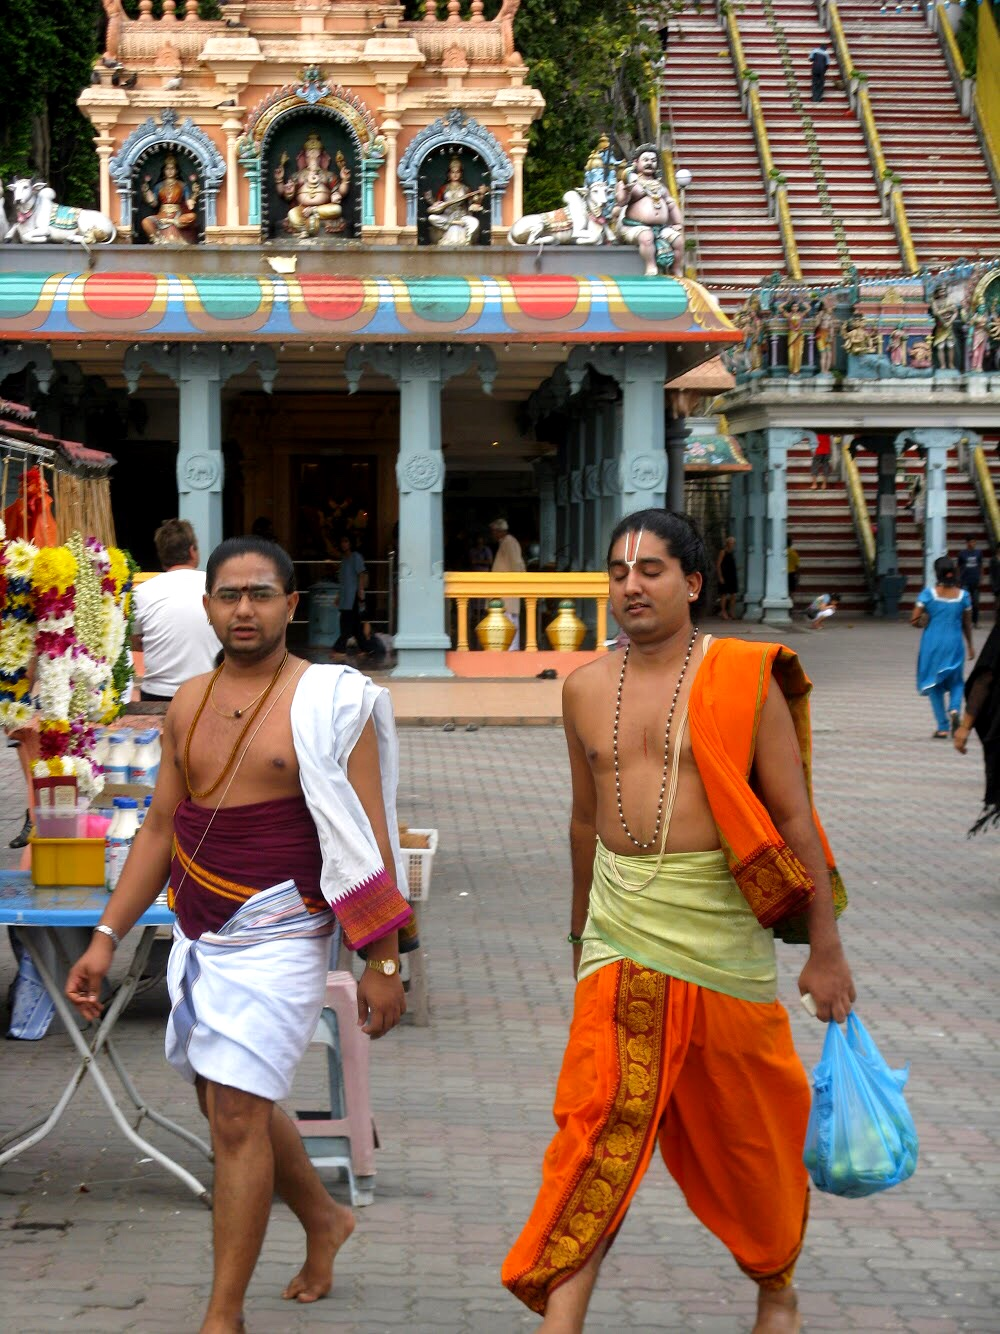 The Batu Caves are popular with Hindu worshippers, especially during the Thaipusam Festival, when hundreds of thousands of pilgrims descend upon the temple